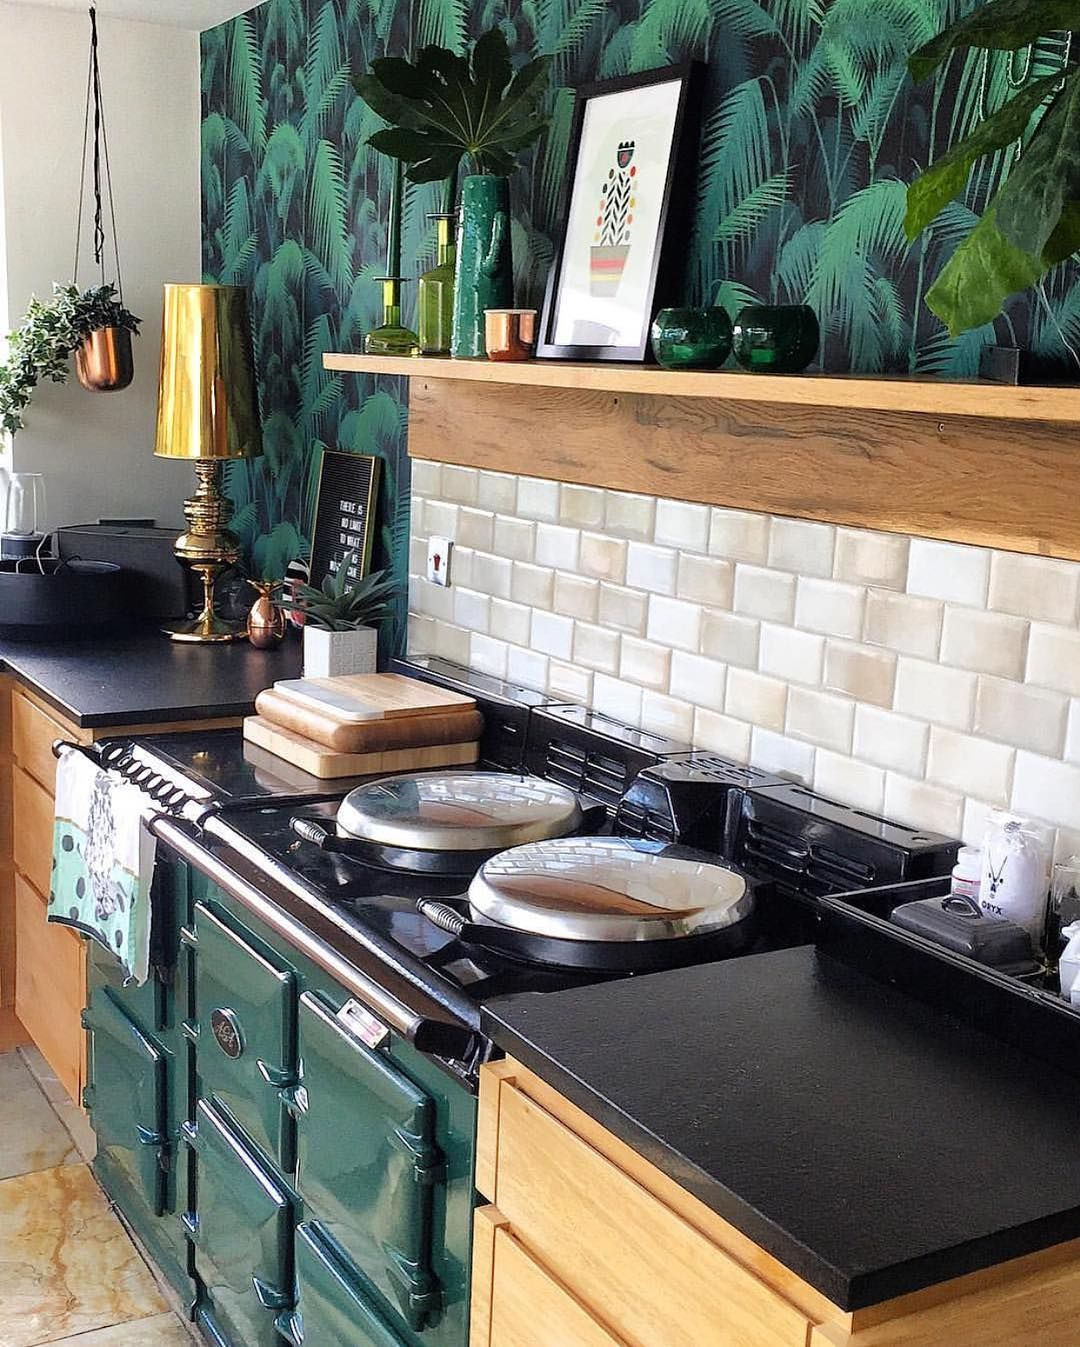 emerald green warm woodgrains emeraldgreen palmwallpaper home kitchens kitchen kitchen on kitchen ideas emerald green id=36834